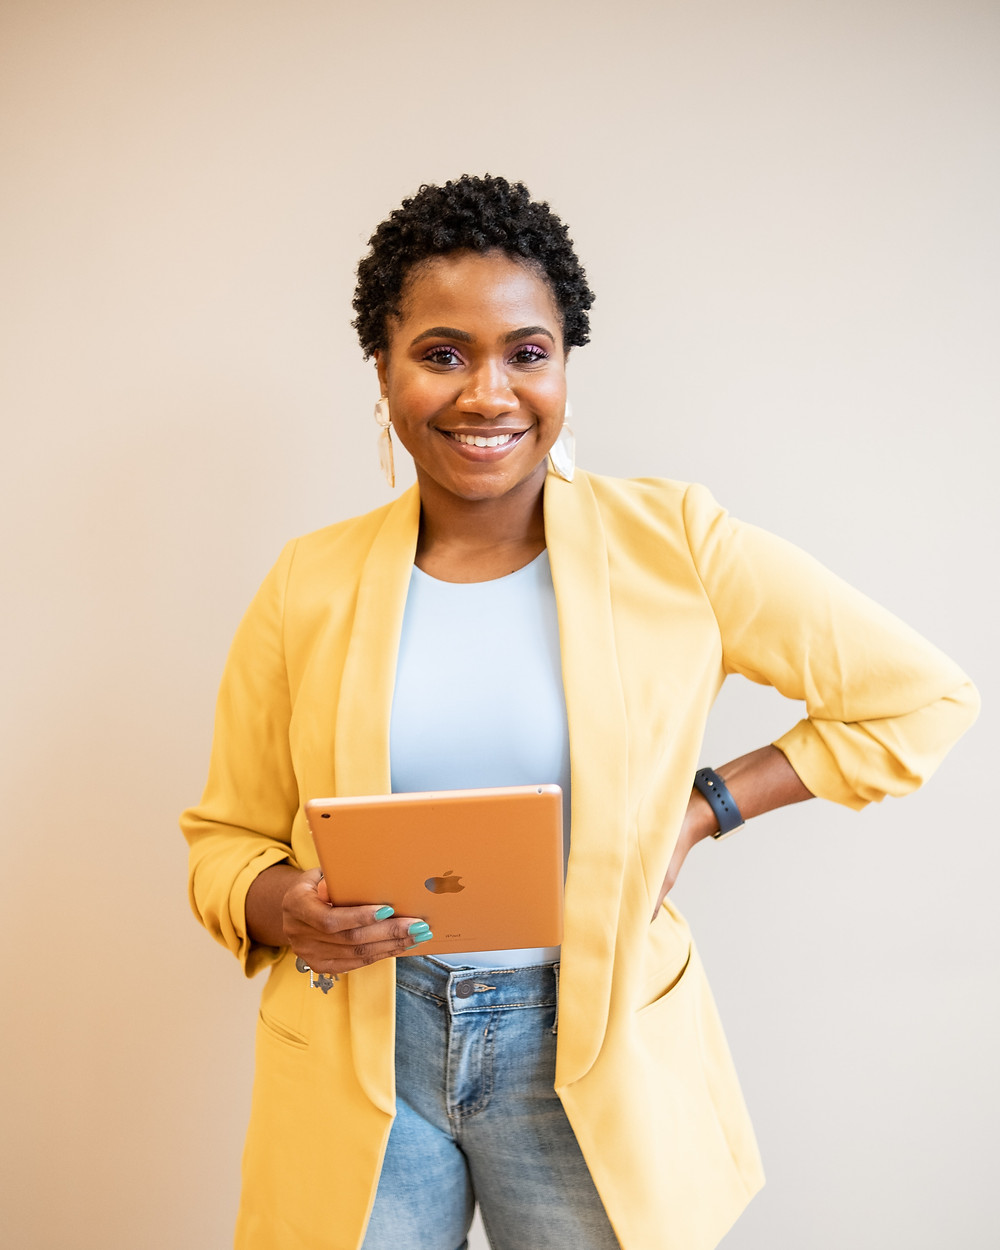 A person in a bright yellow blazer, white t-shirt, and jeans stands in the frame looking at the camera and smiling. They're holding an ipad in one hand and have their other hand on their waist.